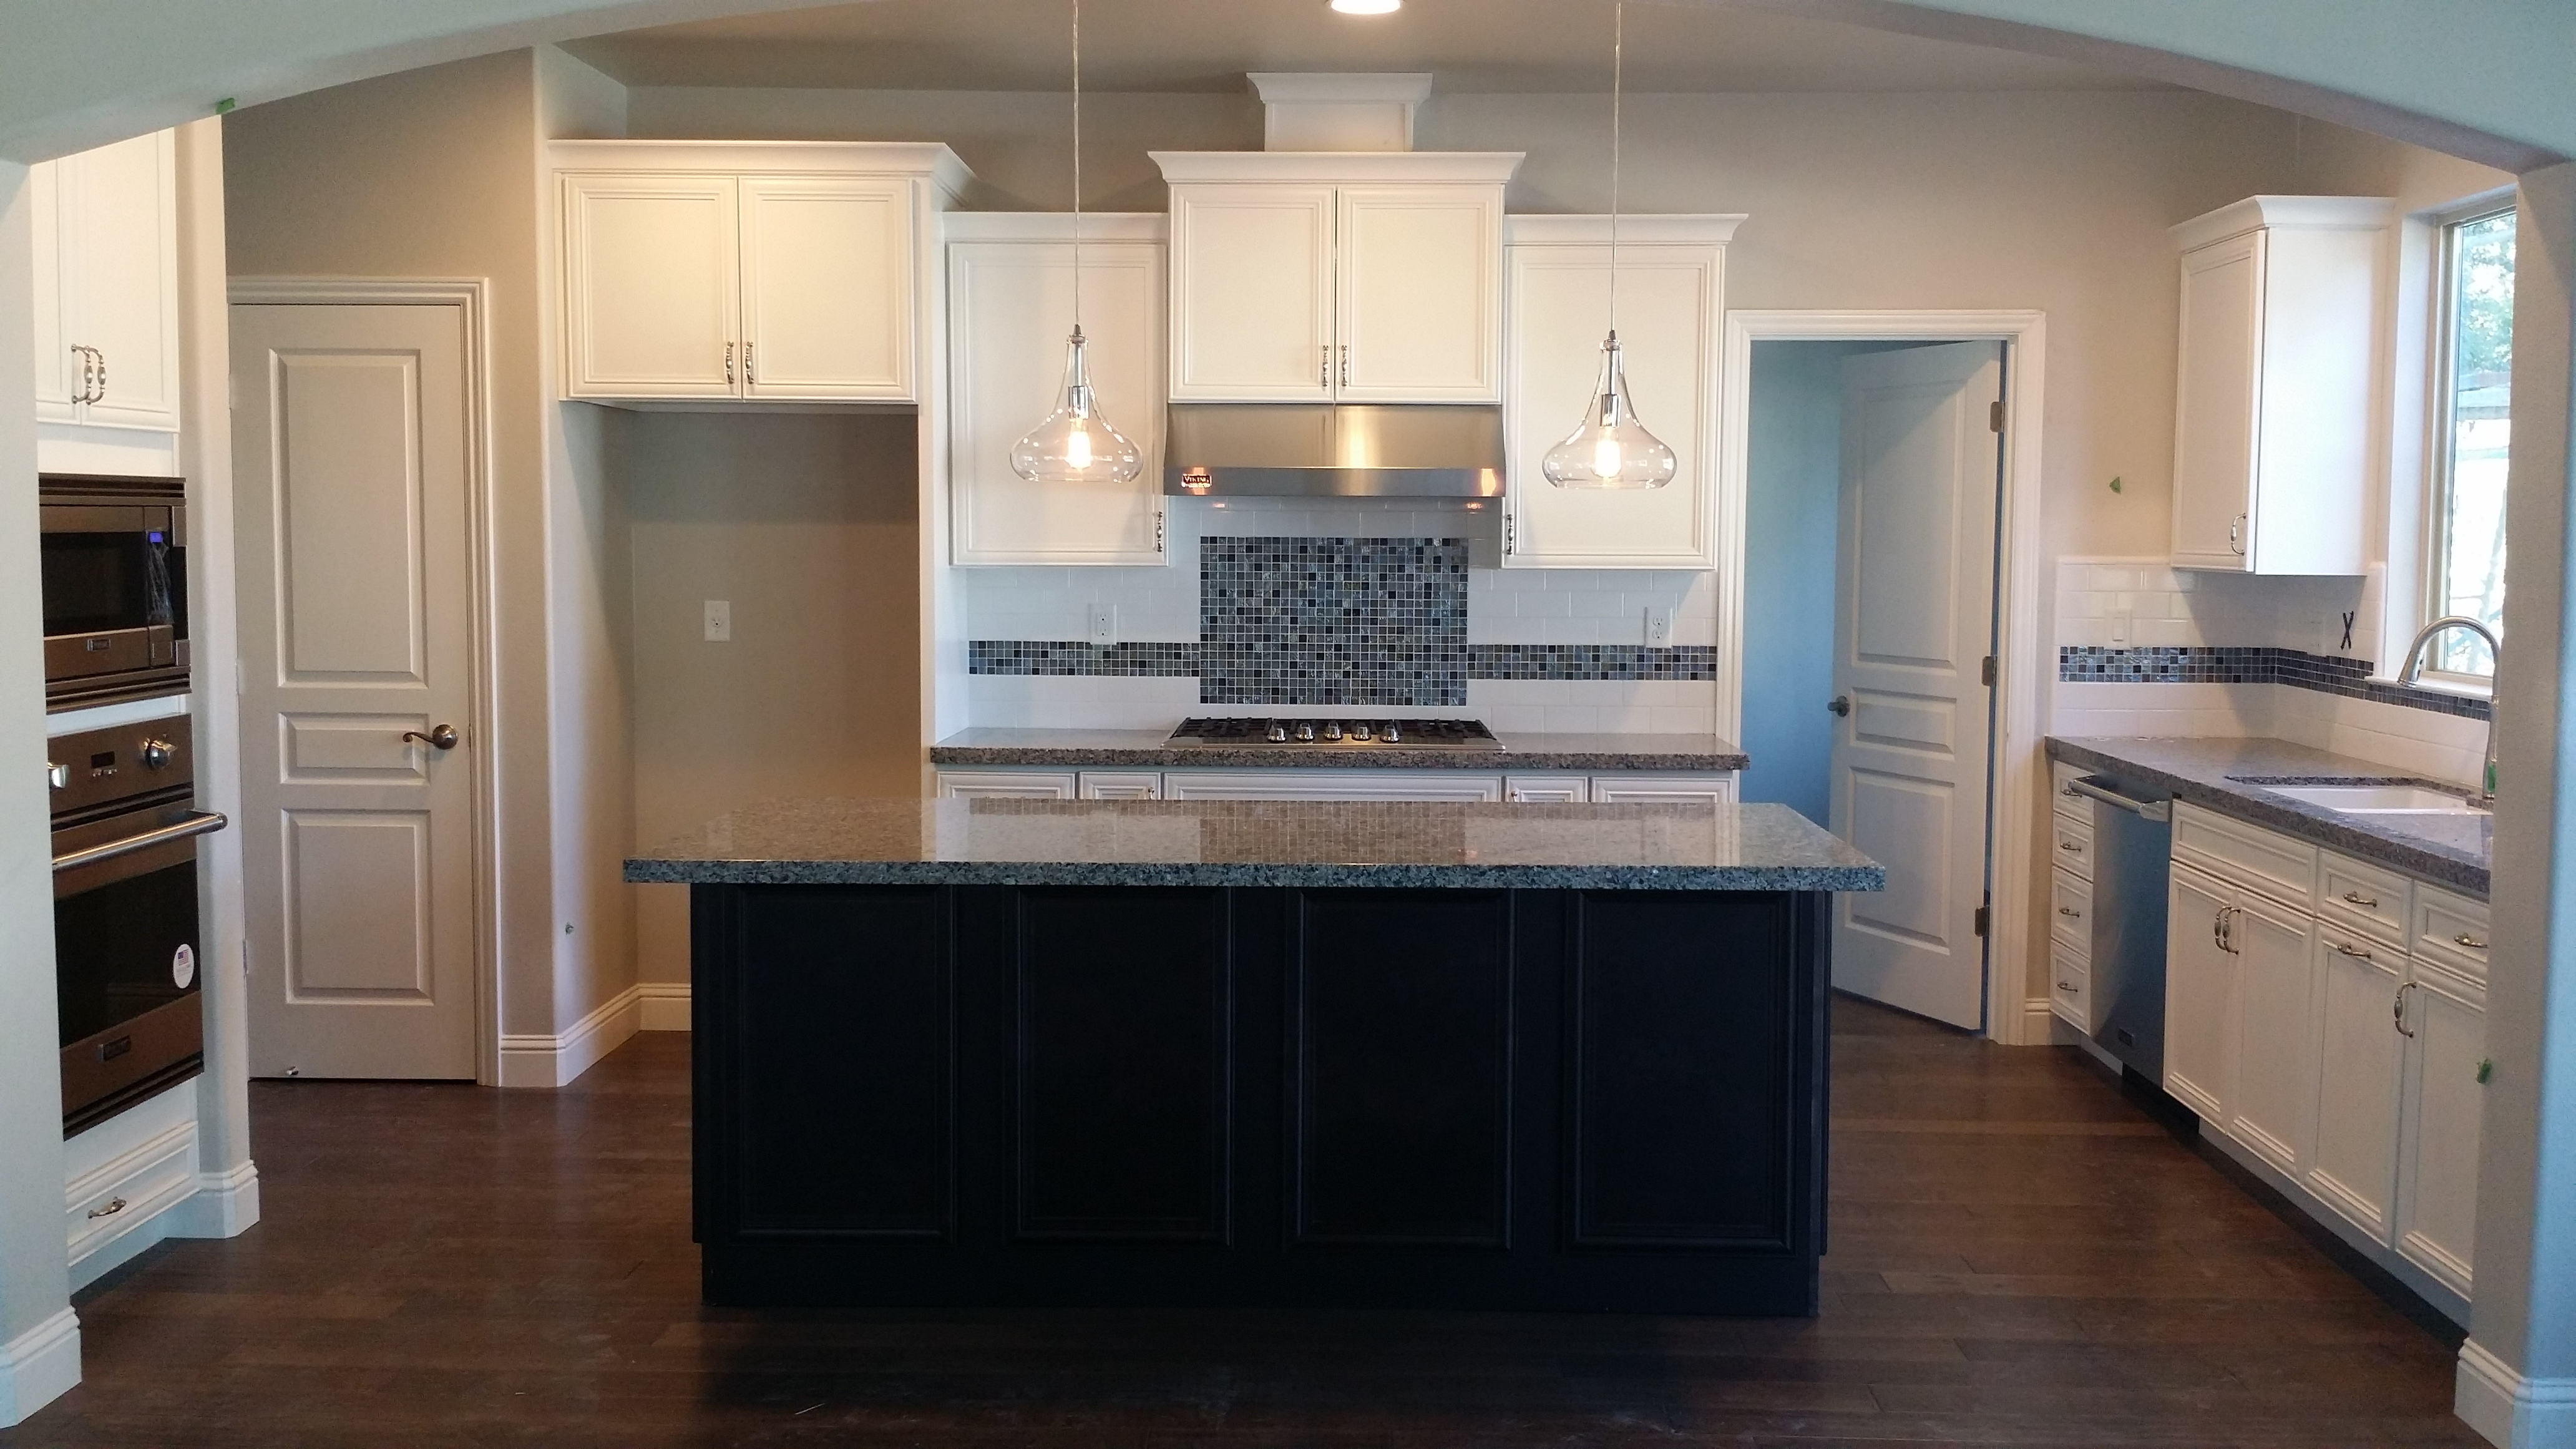 Traditional kitchen with white cabinets, a black island, and black counters